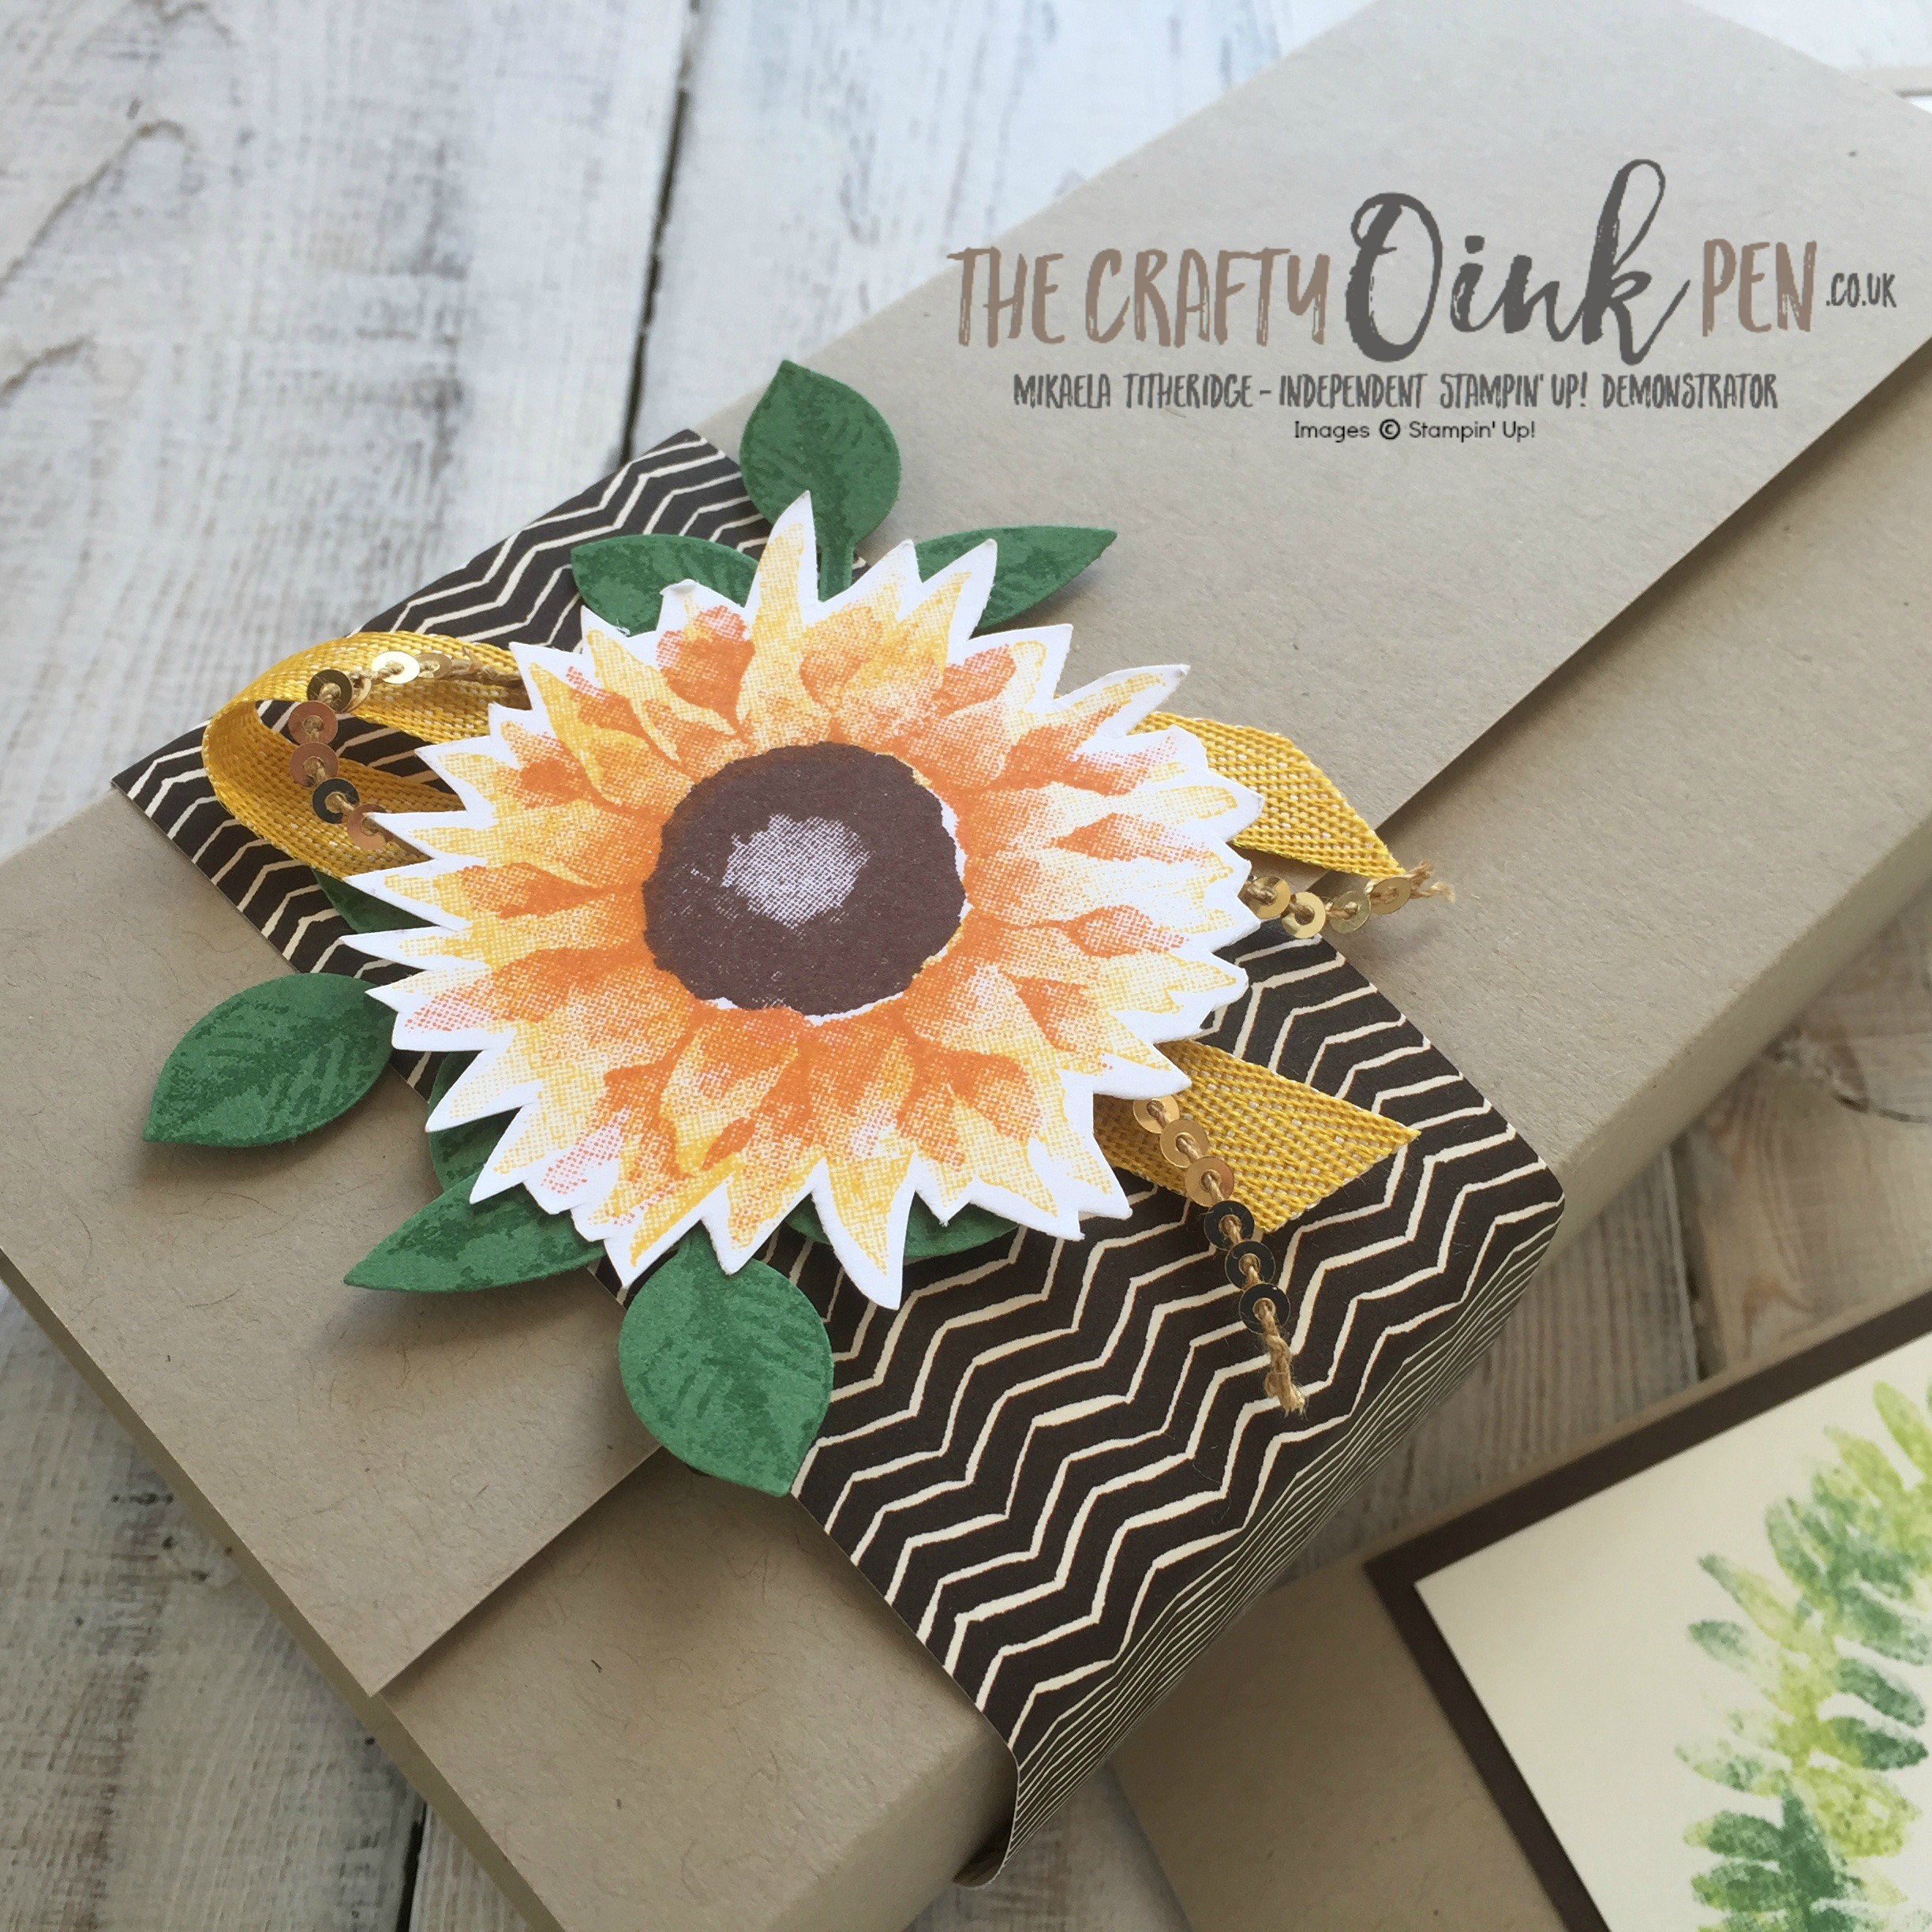 Painted Harvest Gift Box and Cards by Mikaela Titheridge, UK Independent Stampin' Up! Demonstrator, The Crafty oINK Pen